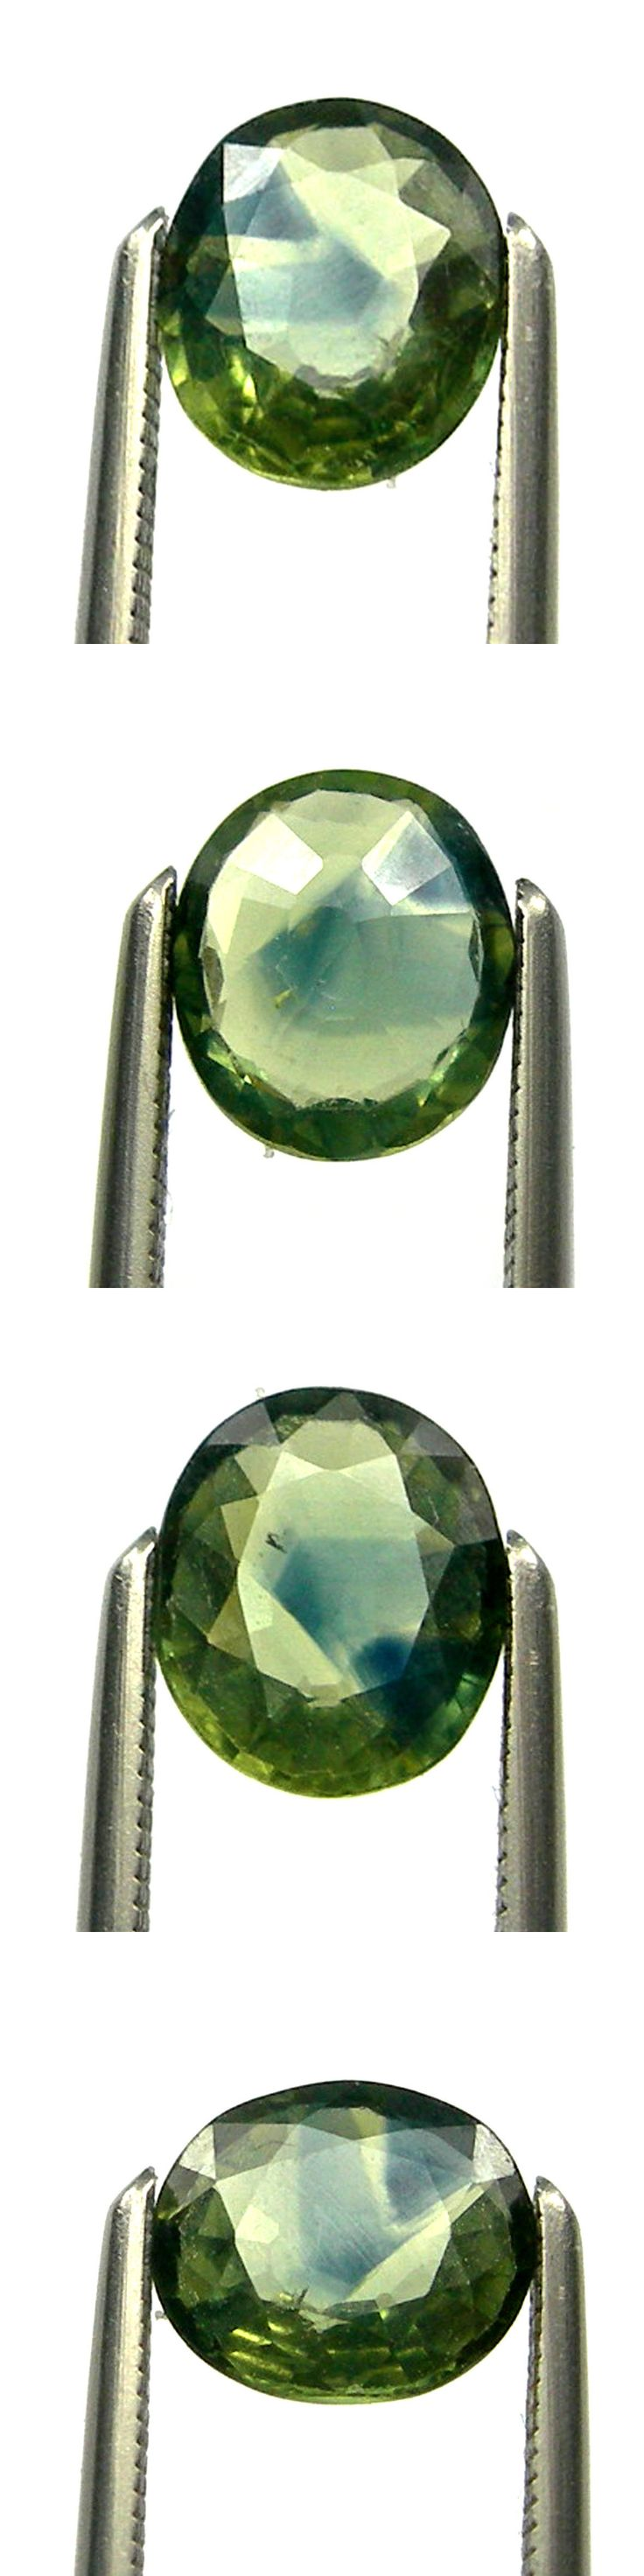 Other Sapphires 164408: 0.91 Carat 6.5X5.5Mm Oval Bi-Color Australian Green Parti Sapphire Gems, Ops30 -> BUY IT NOW ONLY: $149.15 on eBay!